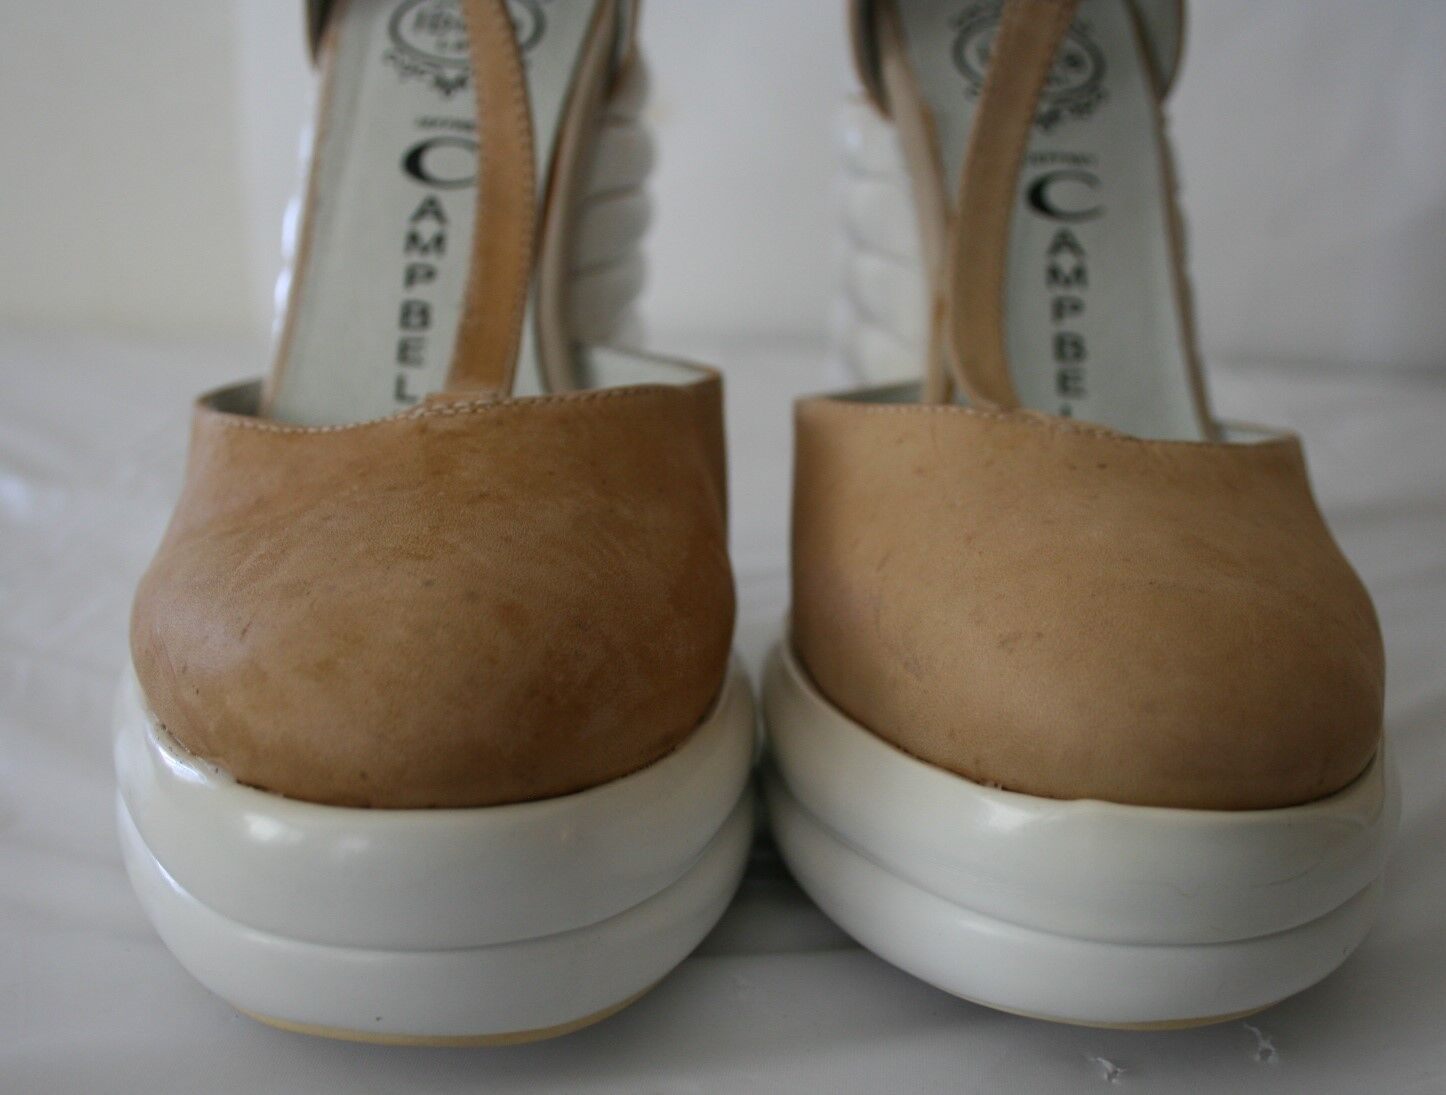 JEFFREY CAMPBELL SHOES SOUS PLATFORM WEDGES T-STRAP HEELS TAN LEATHER LEATHER LEATHER 8.5  160 ad7f1a